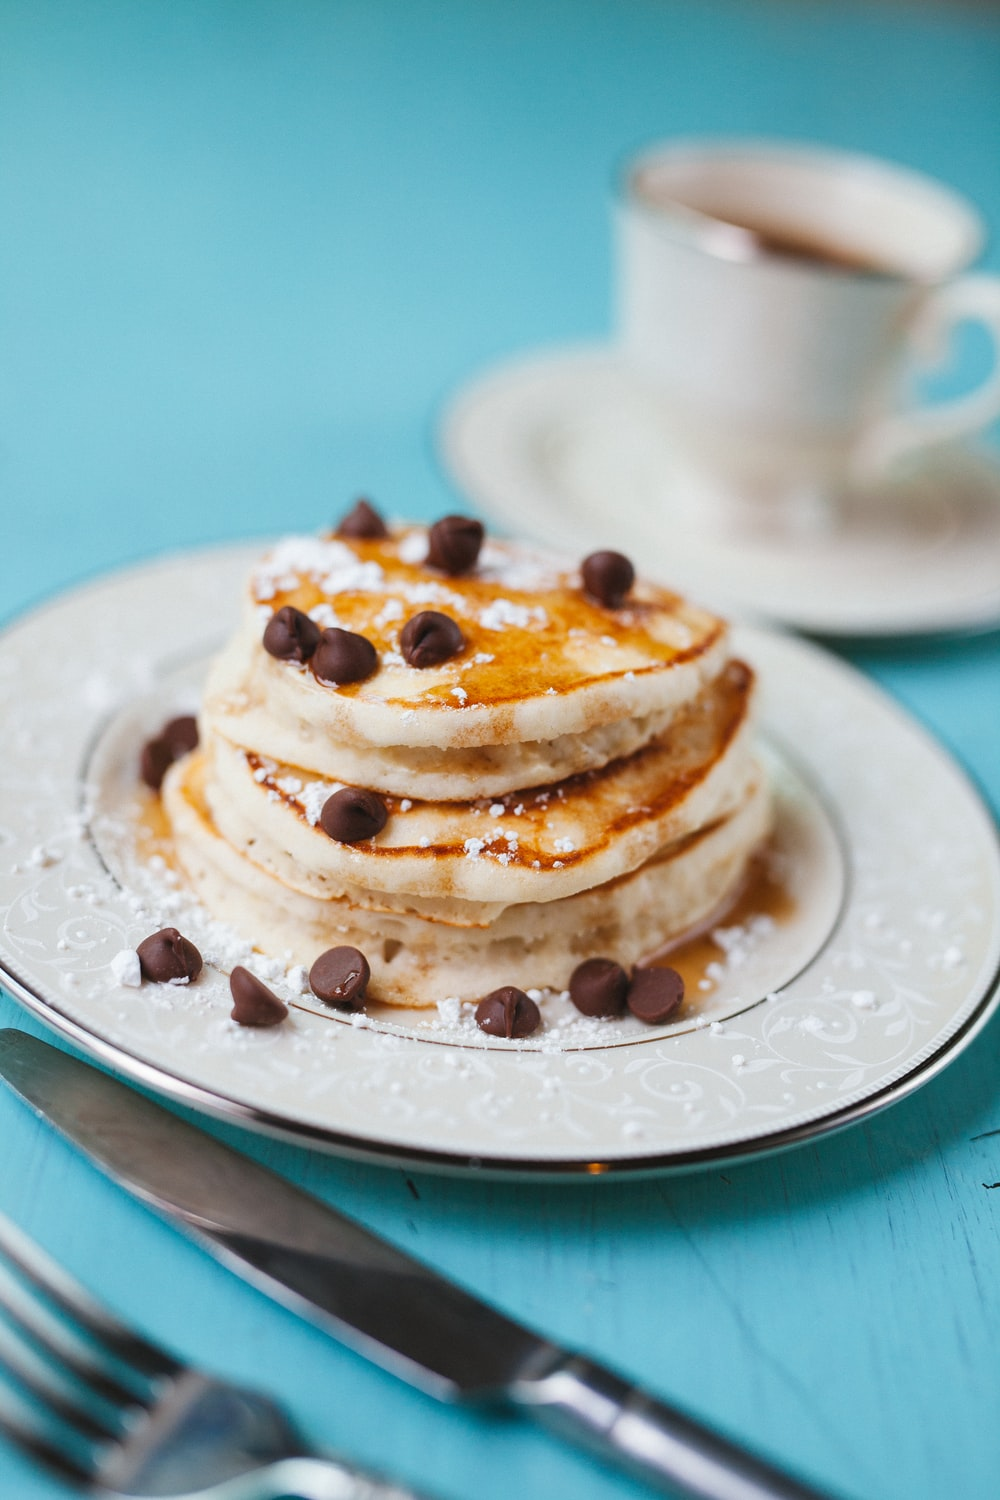 Chocolate chip covered pancakes on a plate.